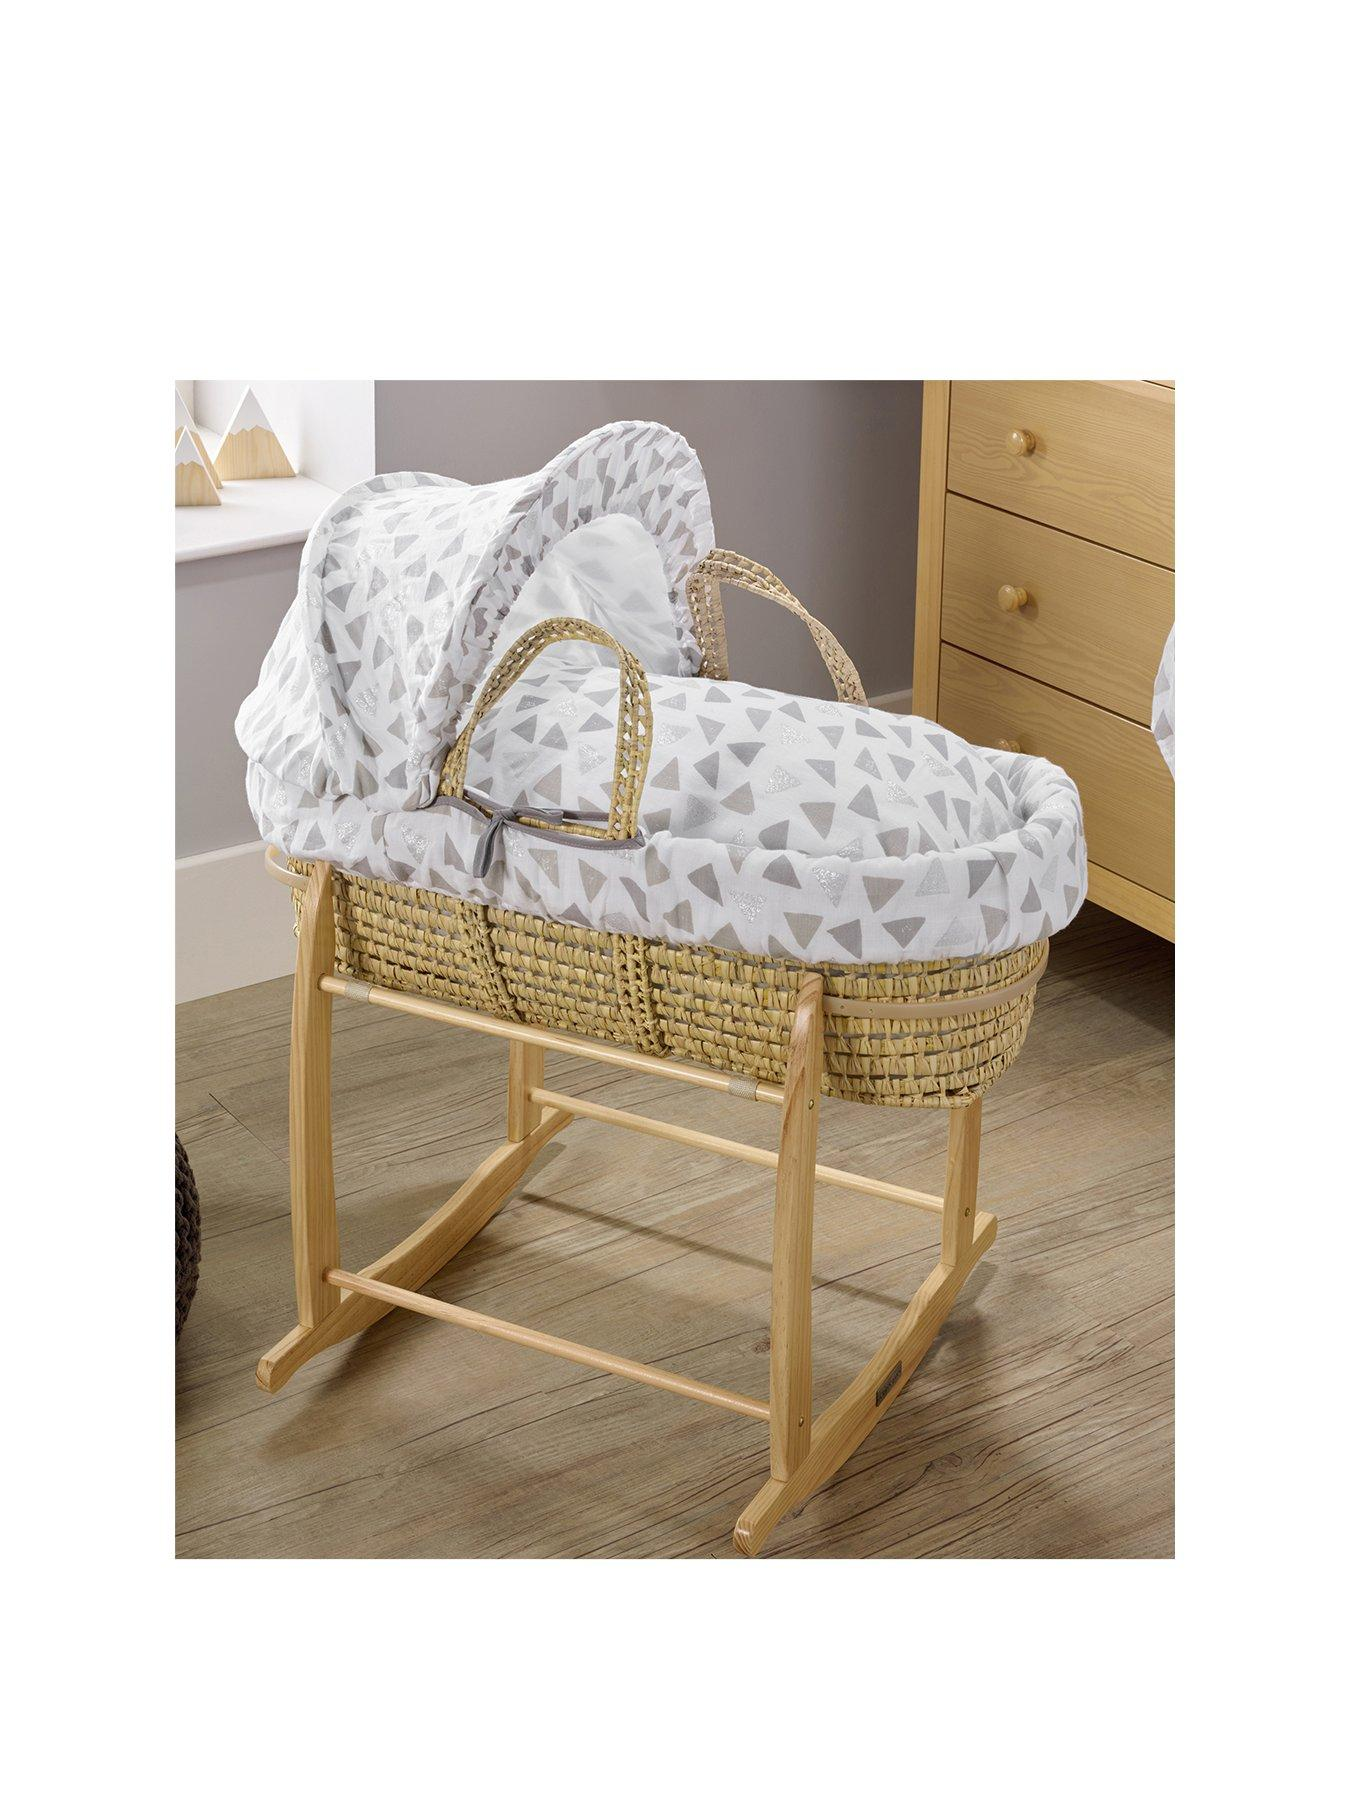 Baby Pram Moses Basket Mattress Waterproof Made in England  Top Quality 74 X 28